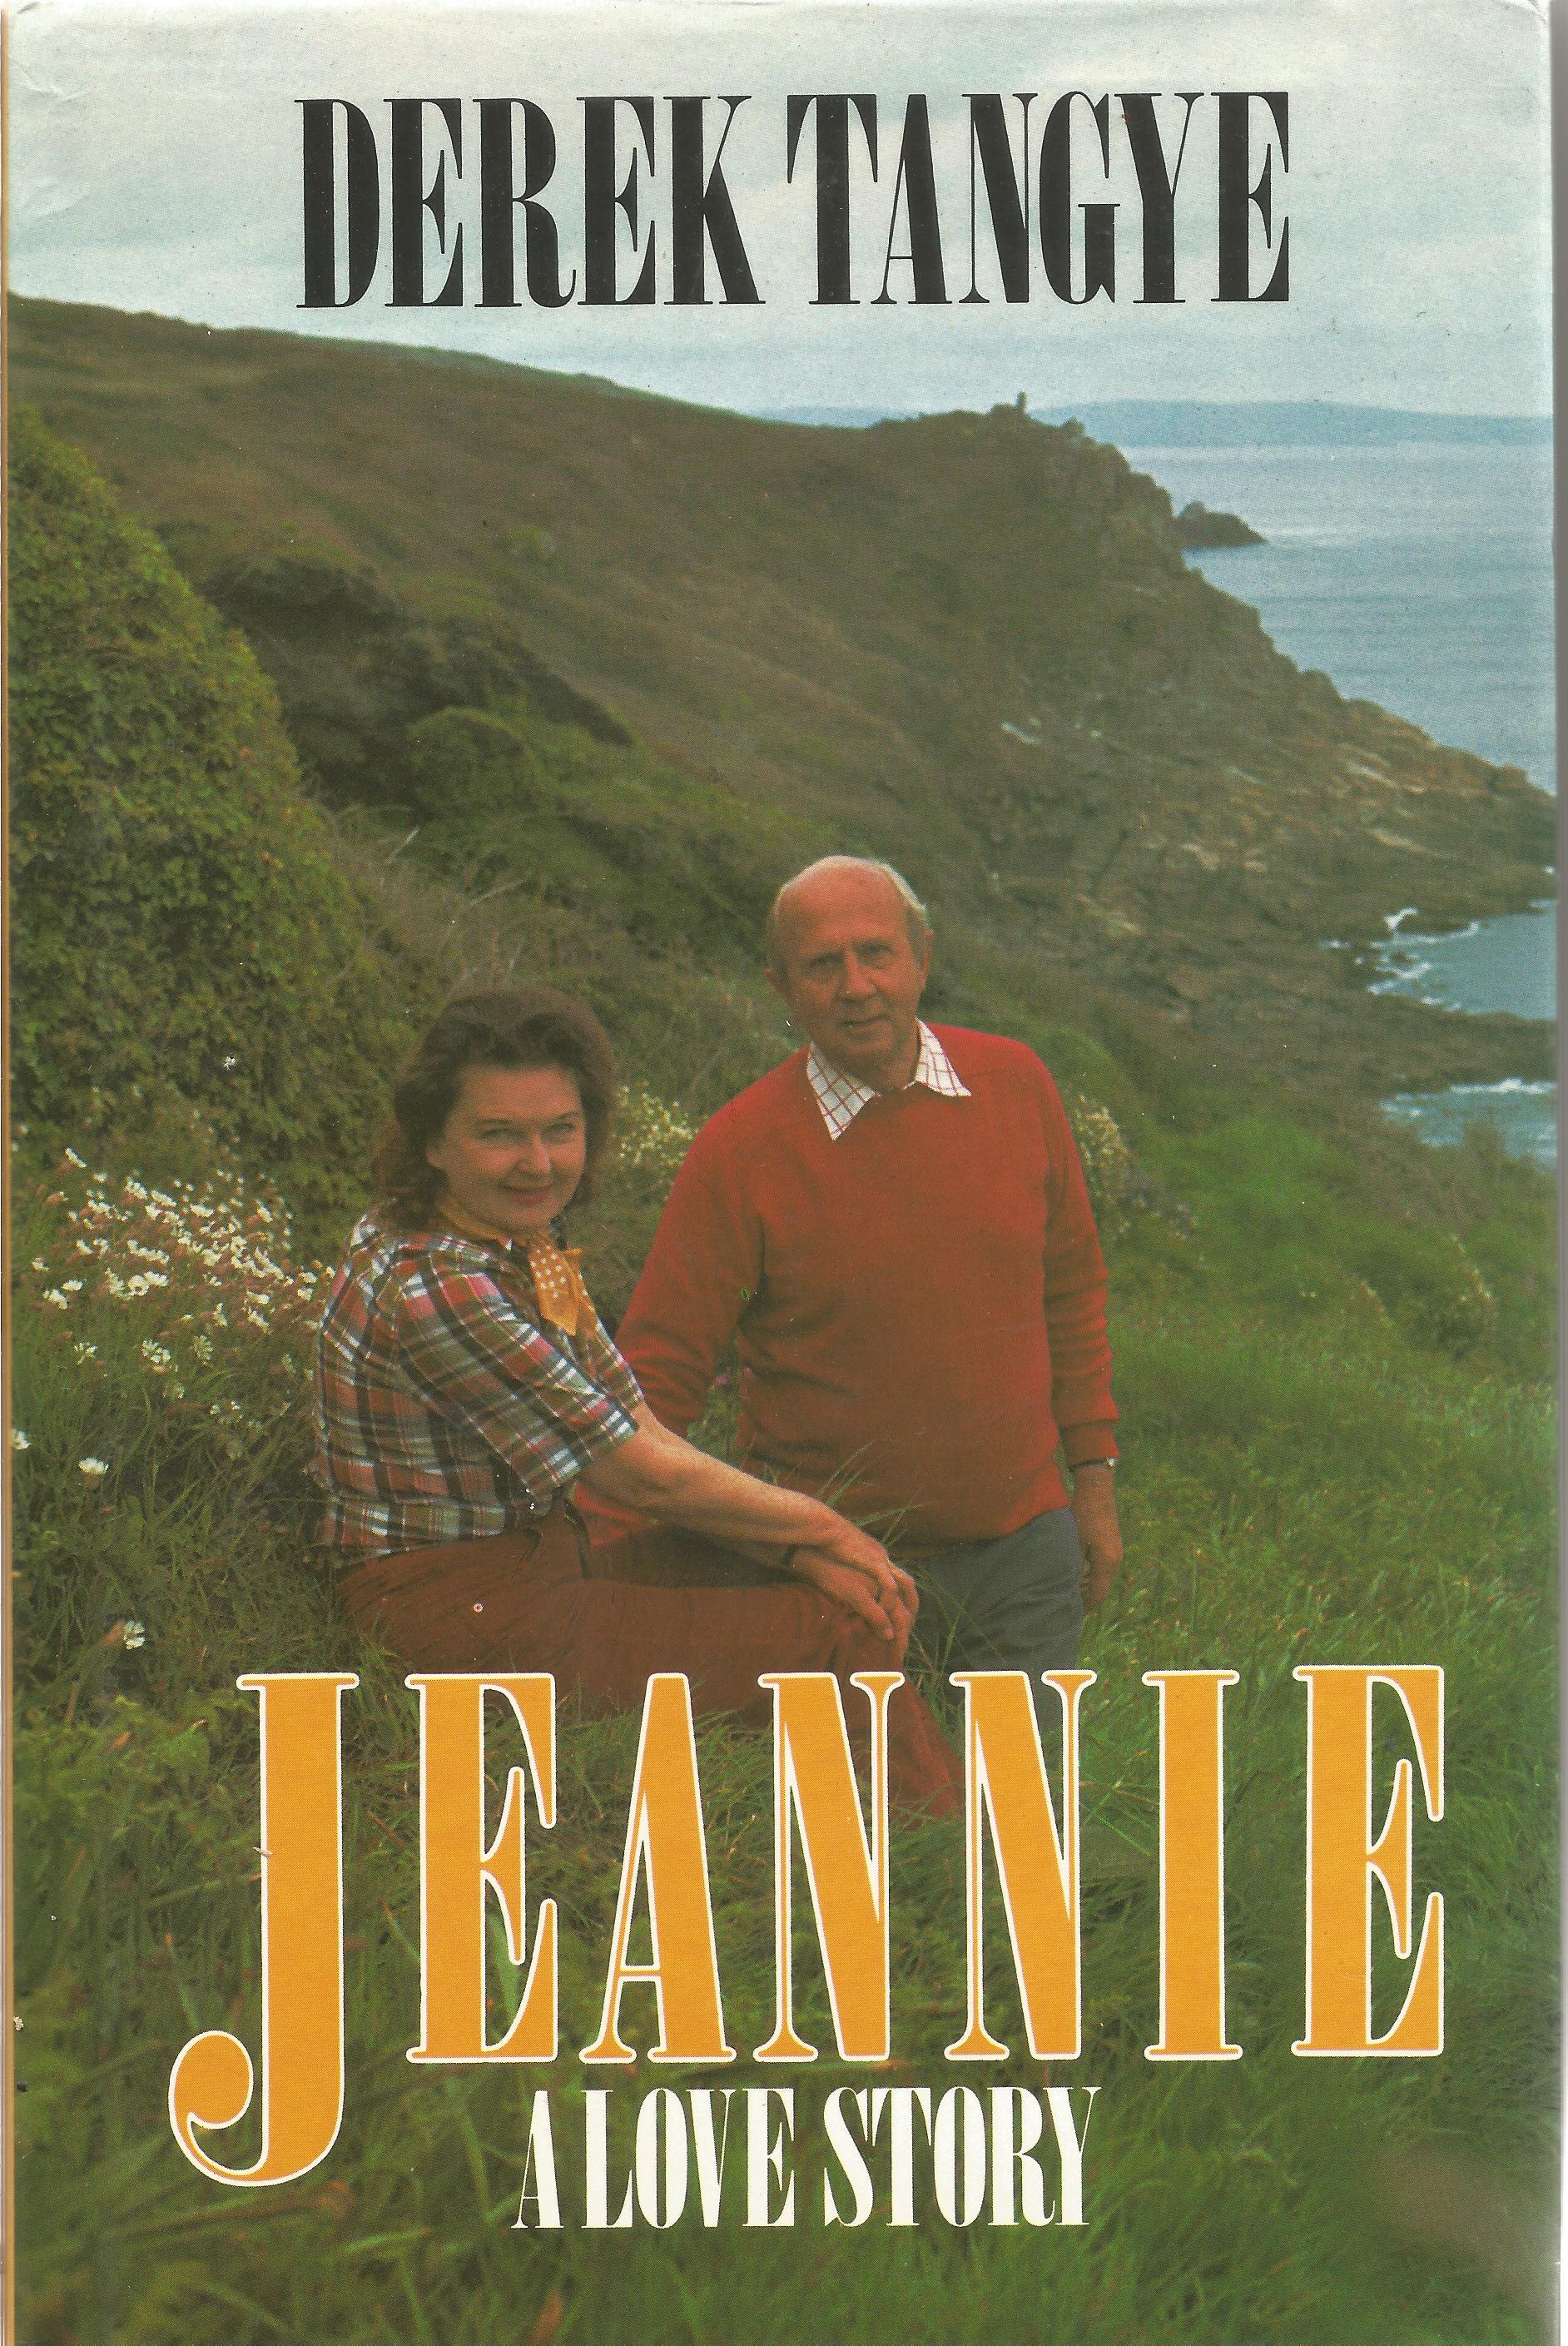 Derek Tangye Hardback Book Jeannie A Love Story signed by the Author on the First Page First Edition